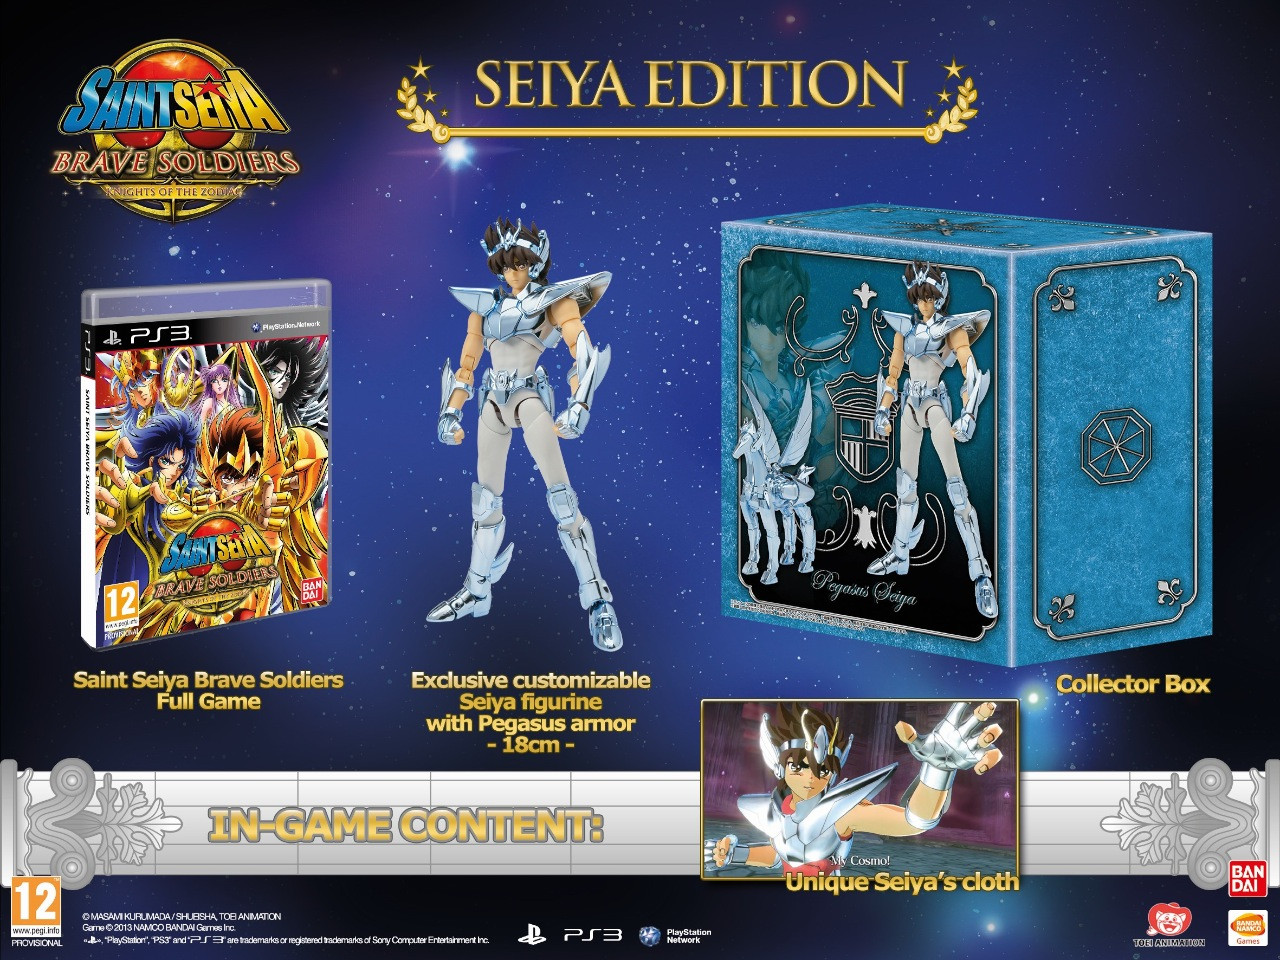 Check out the Saint Seiya Brave Soldiers Seiya Edition, with its